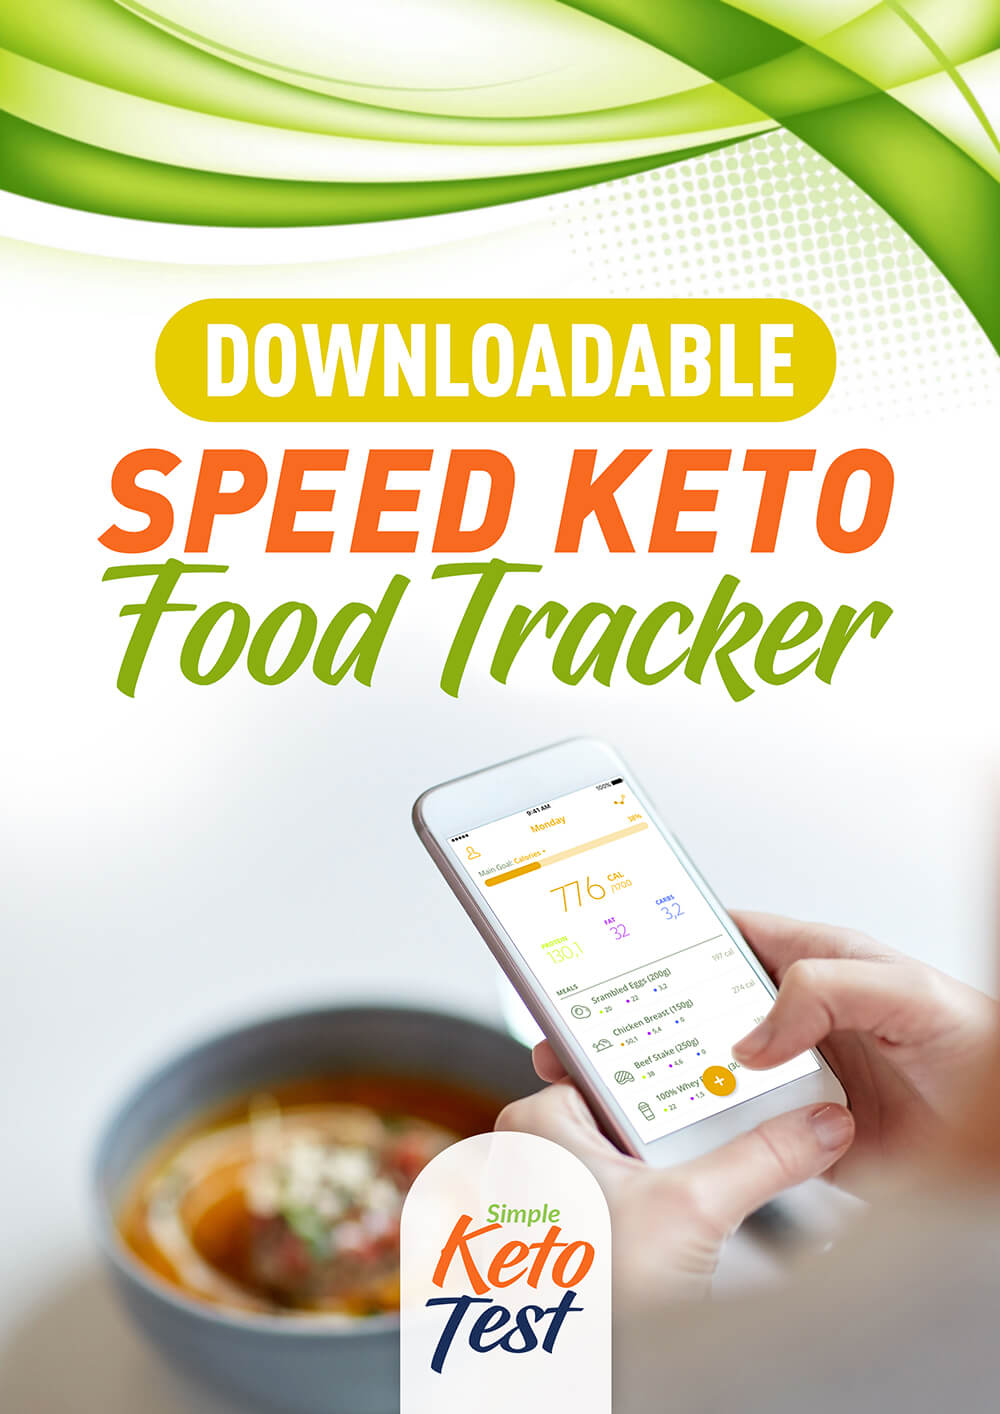 Your Ketosis Level Test Result Is Ready | Simple Keto